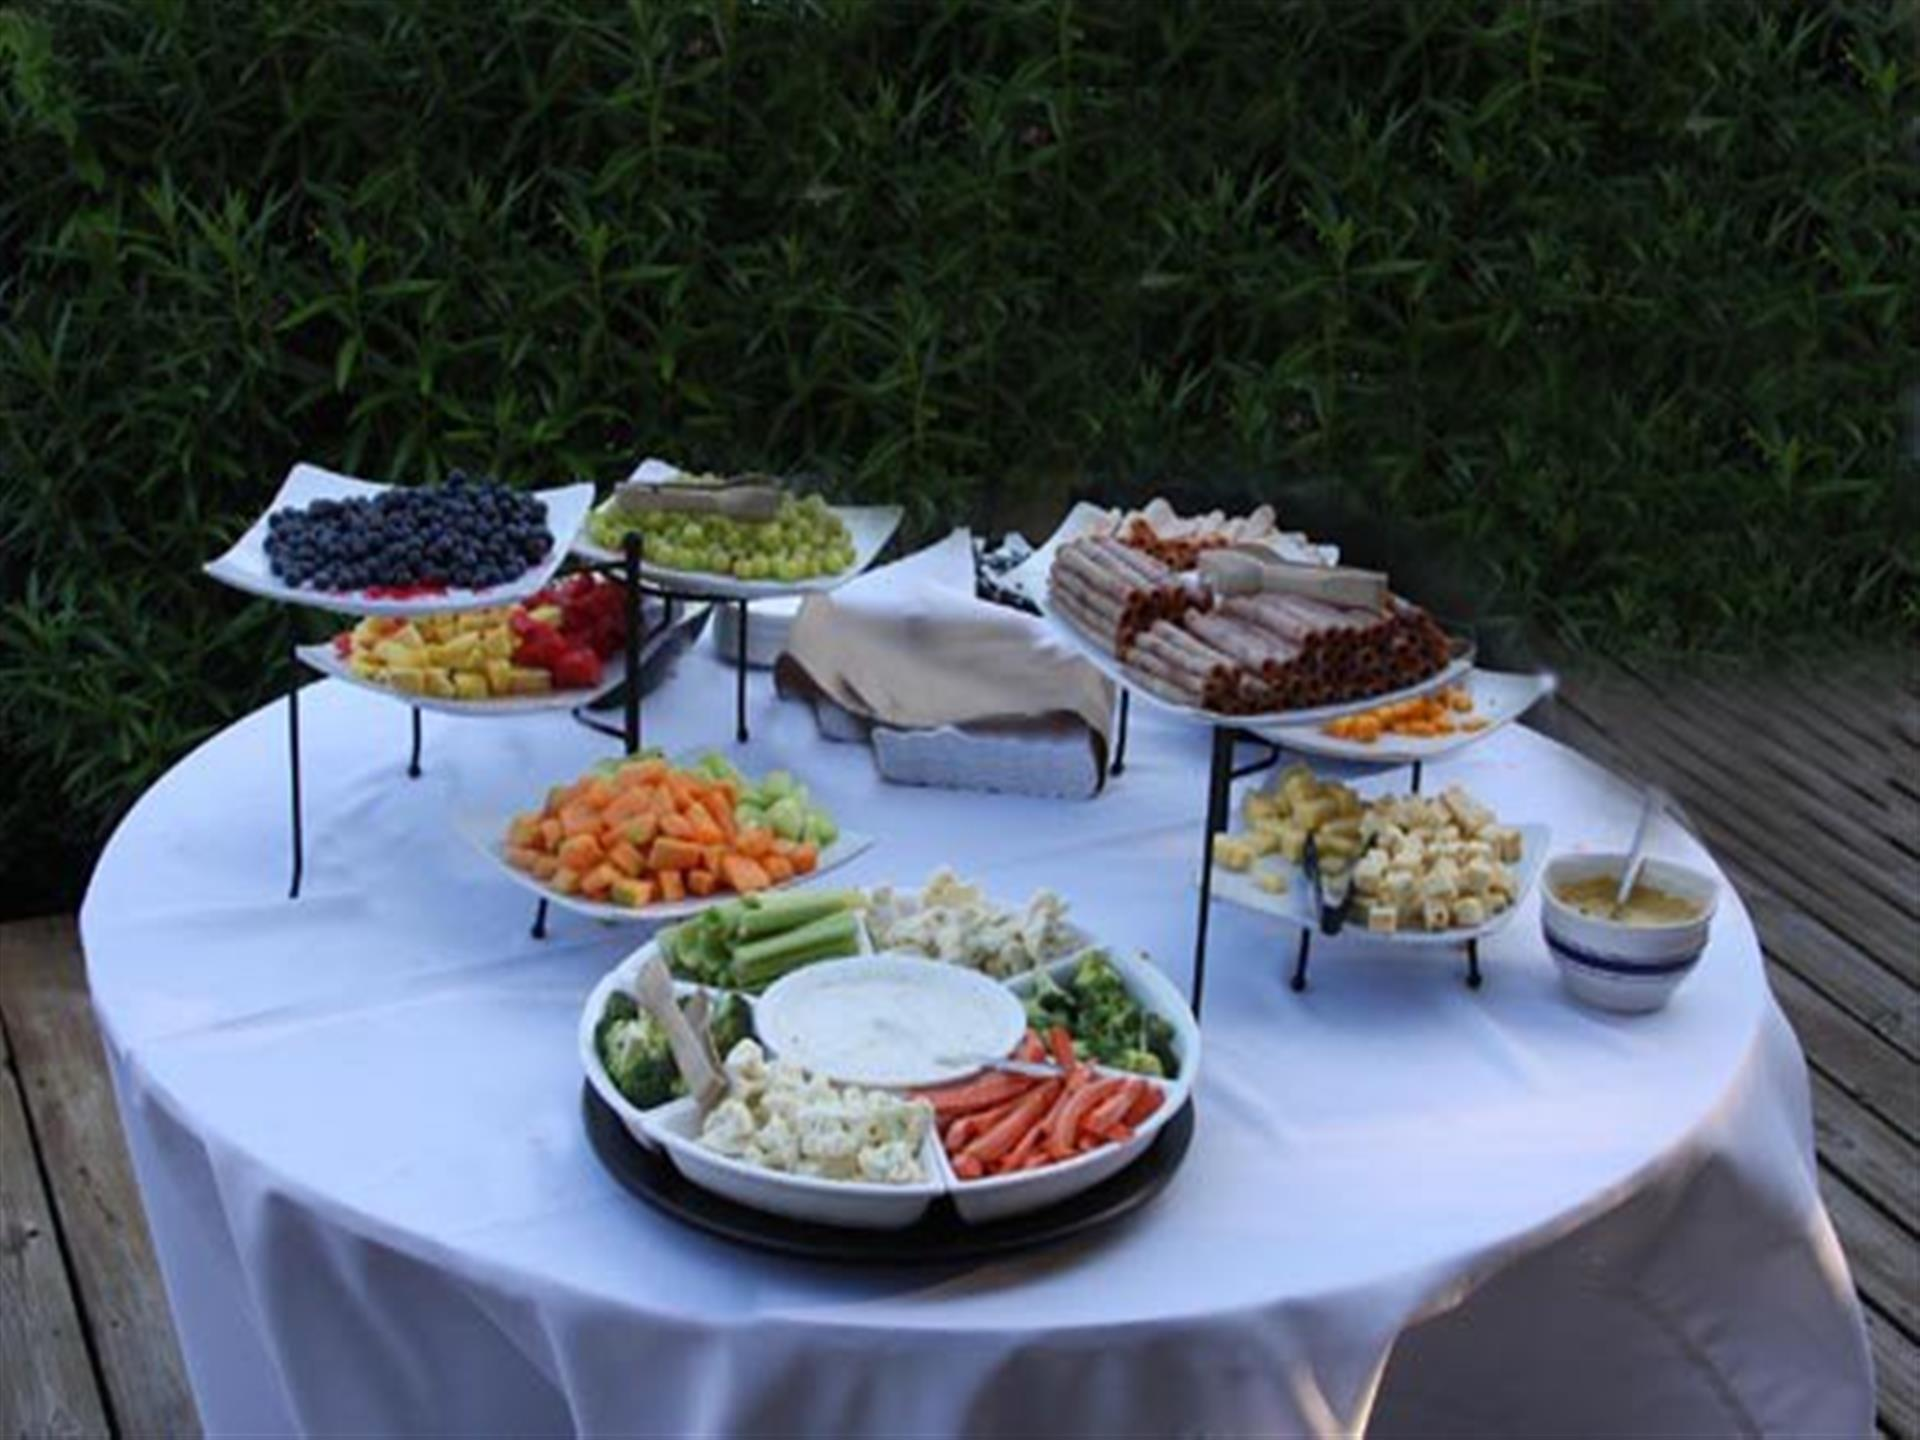 Display of fruits, vegetables, cold cuts on outdoor table with white cloth